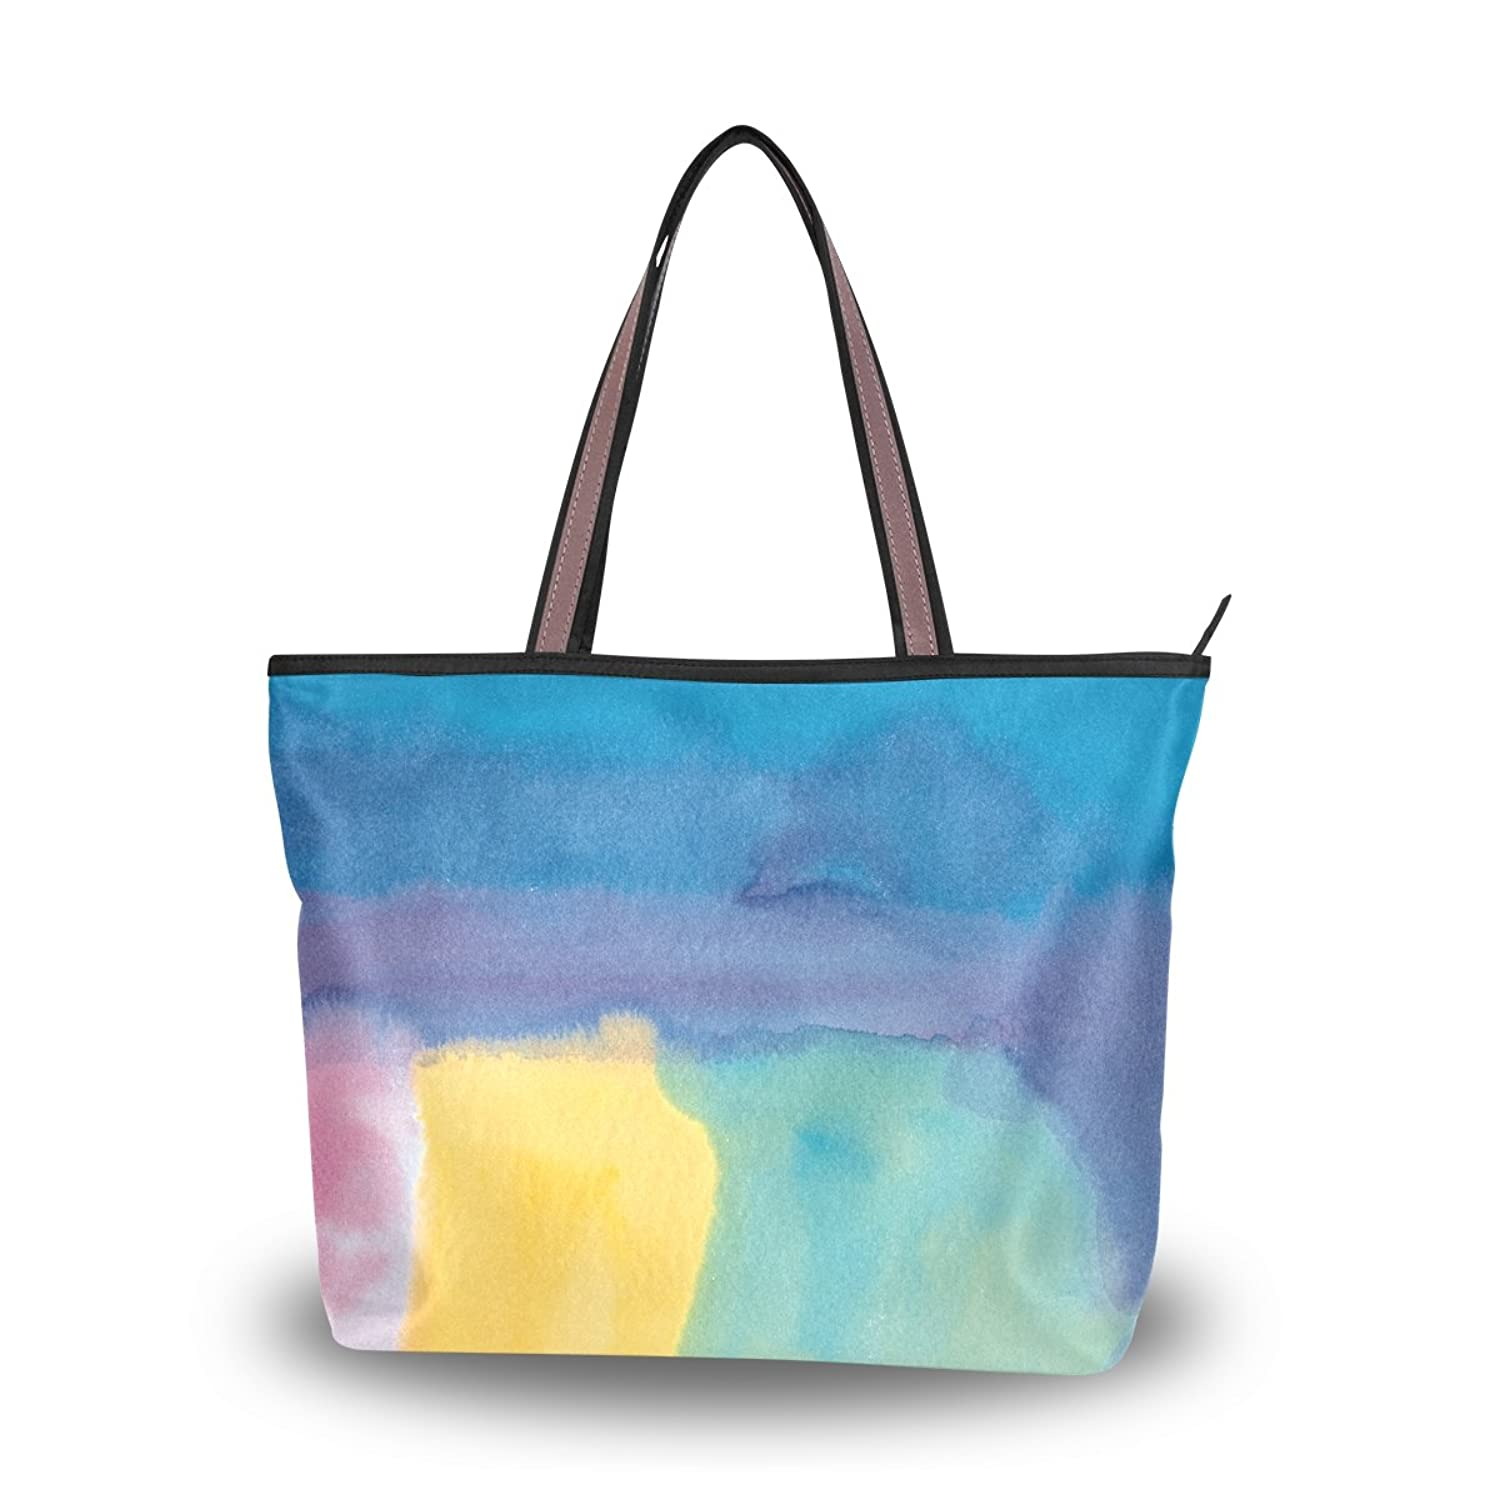 Leezone Colorful Oil Paint Printing Microfiber Shoulder Handbags